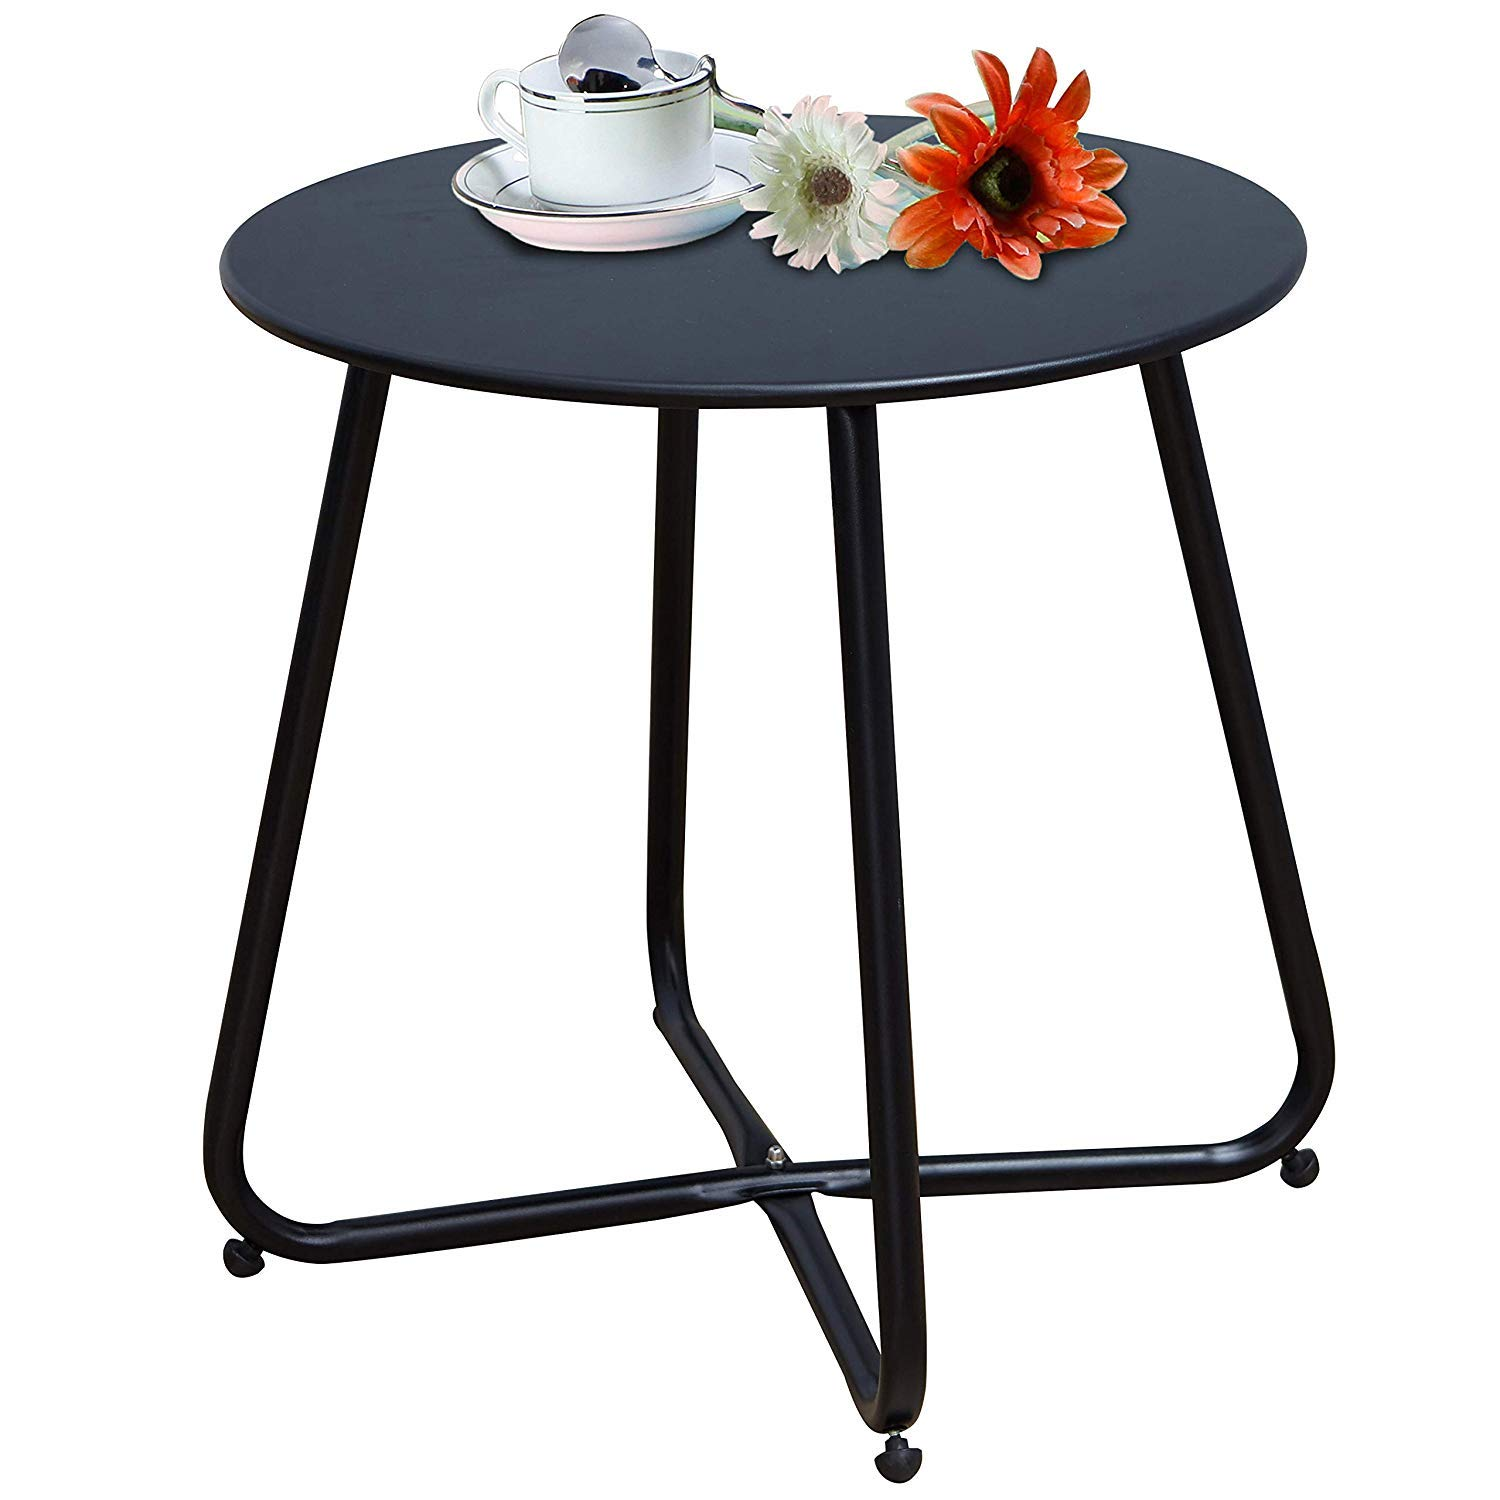 Grand patio Steel Patio Coffee Table, Weather Resistant Outdoor Side Table, Small Round End Tables, Black